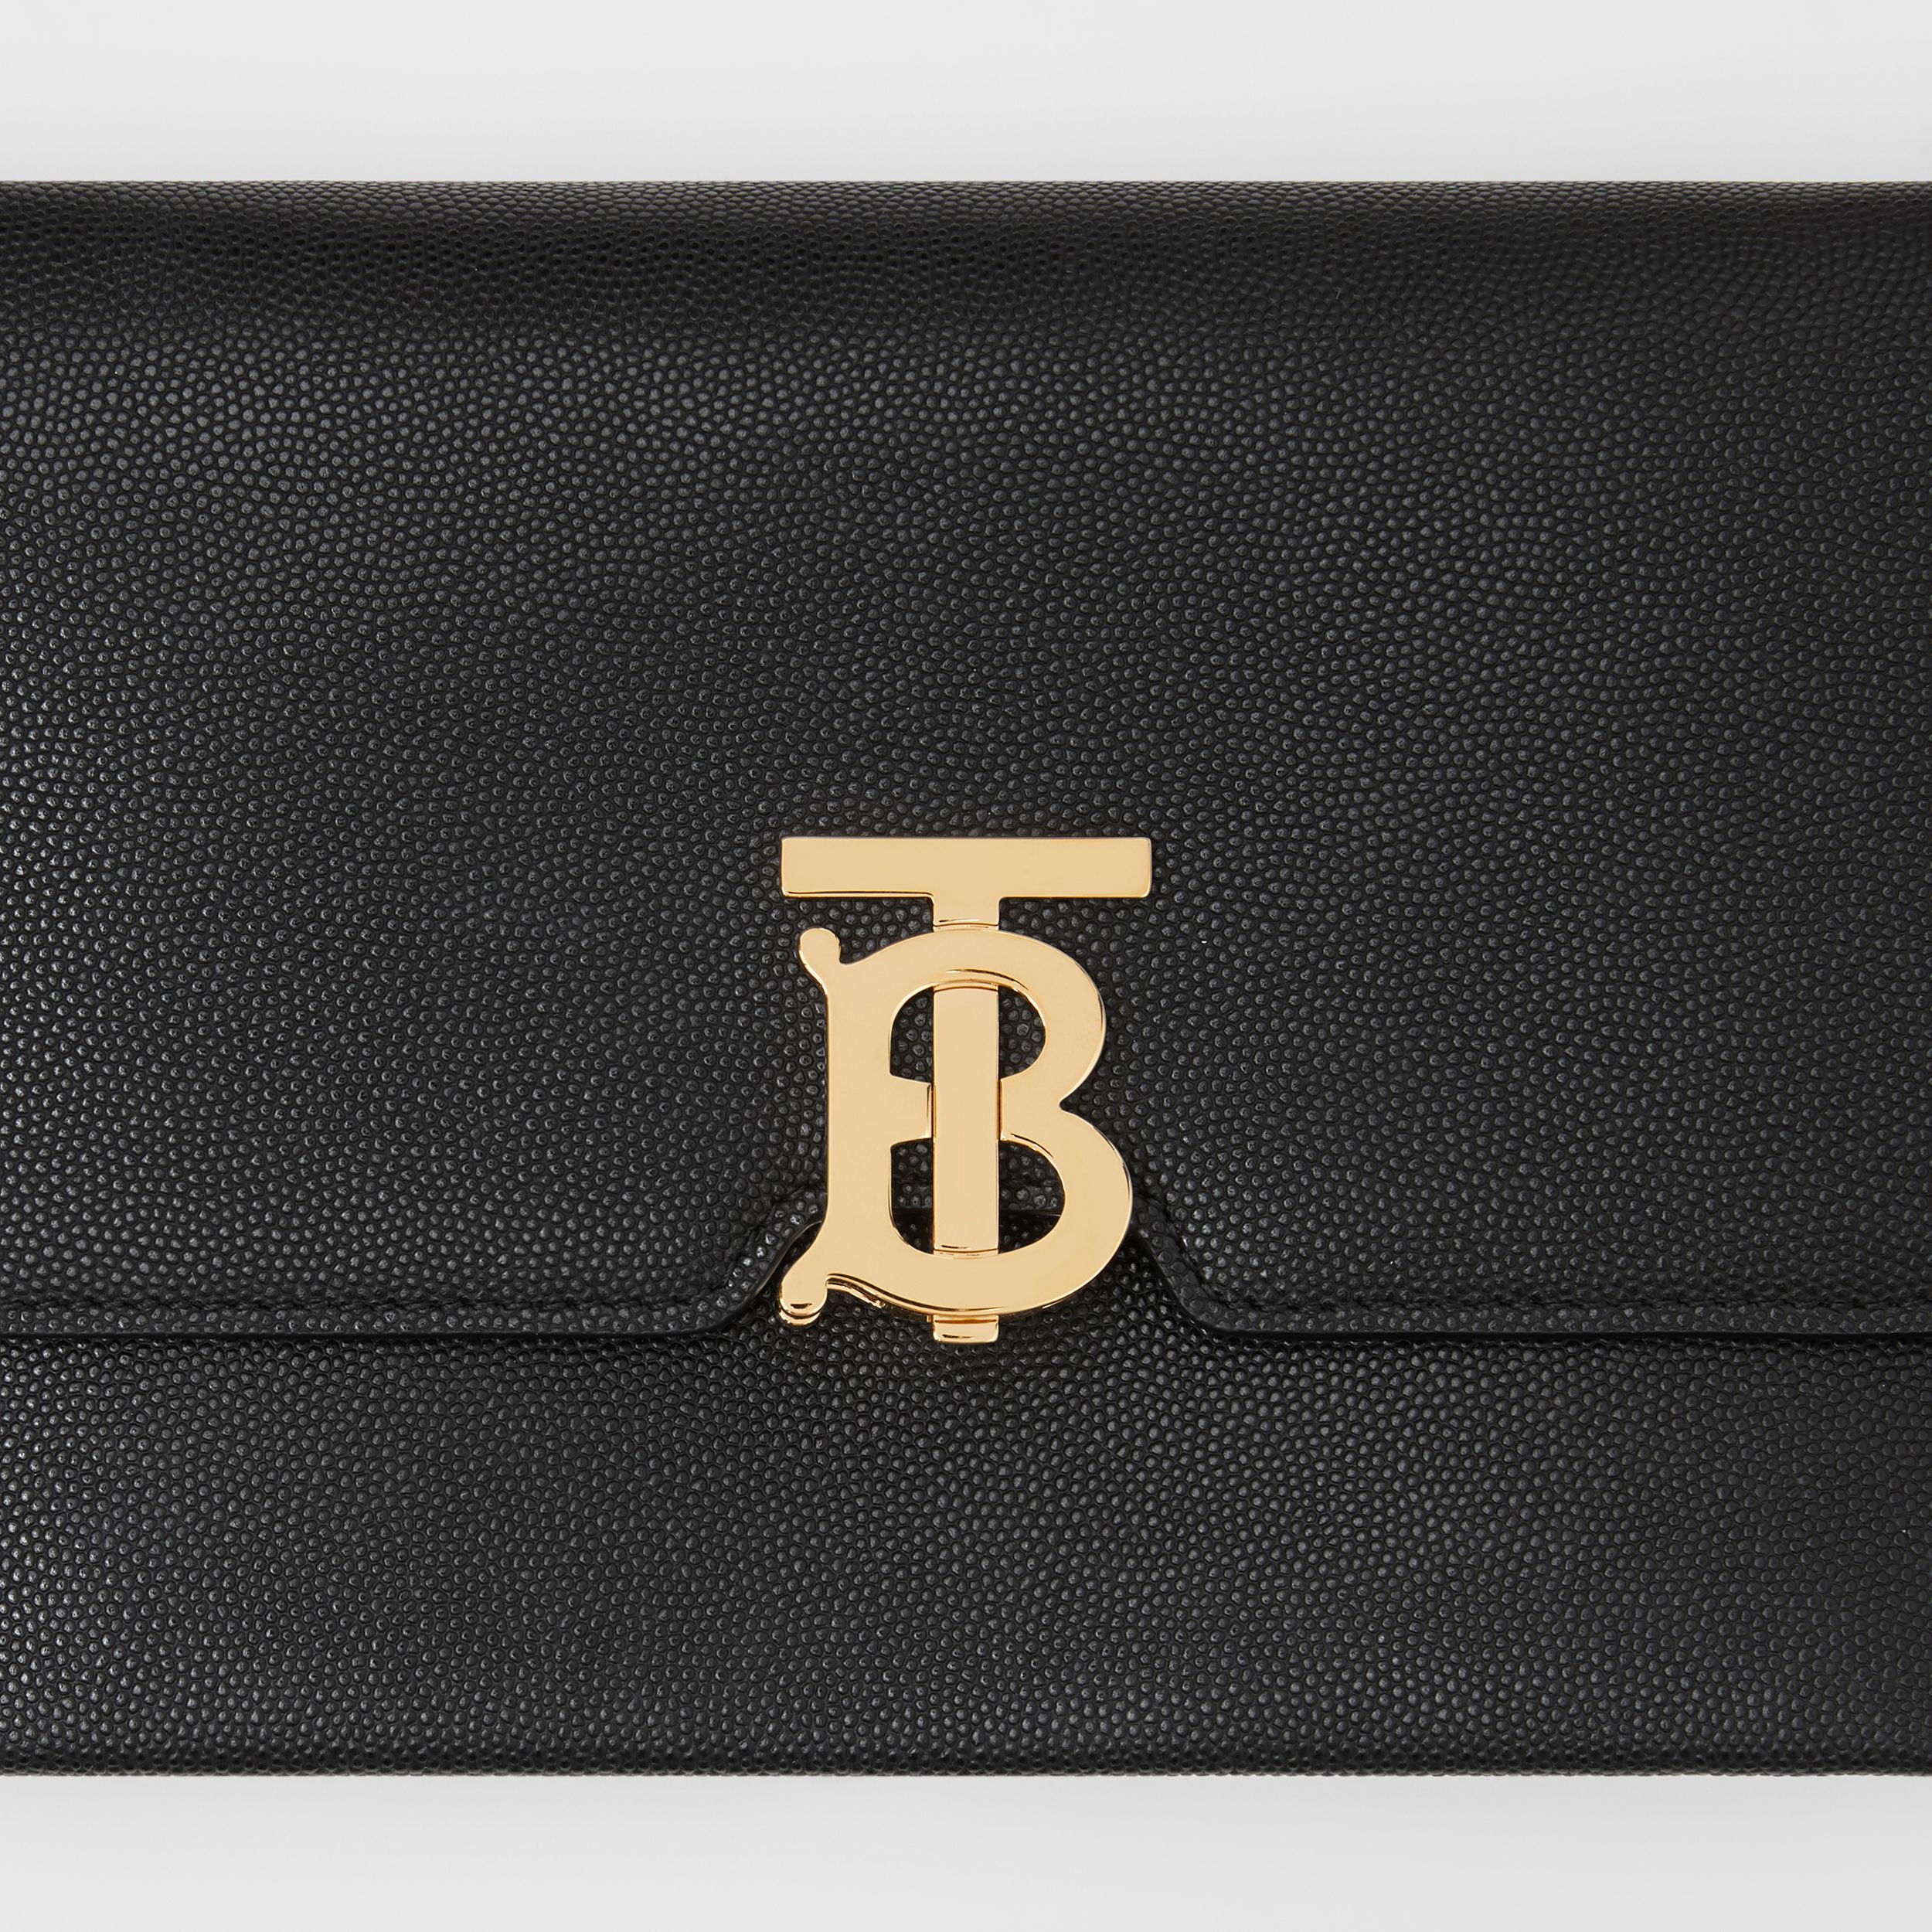 Small Monogram Motif Leather Crossbody Bag in Black - Women | Burberry Hong Kong S.A.R. - 2